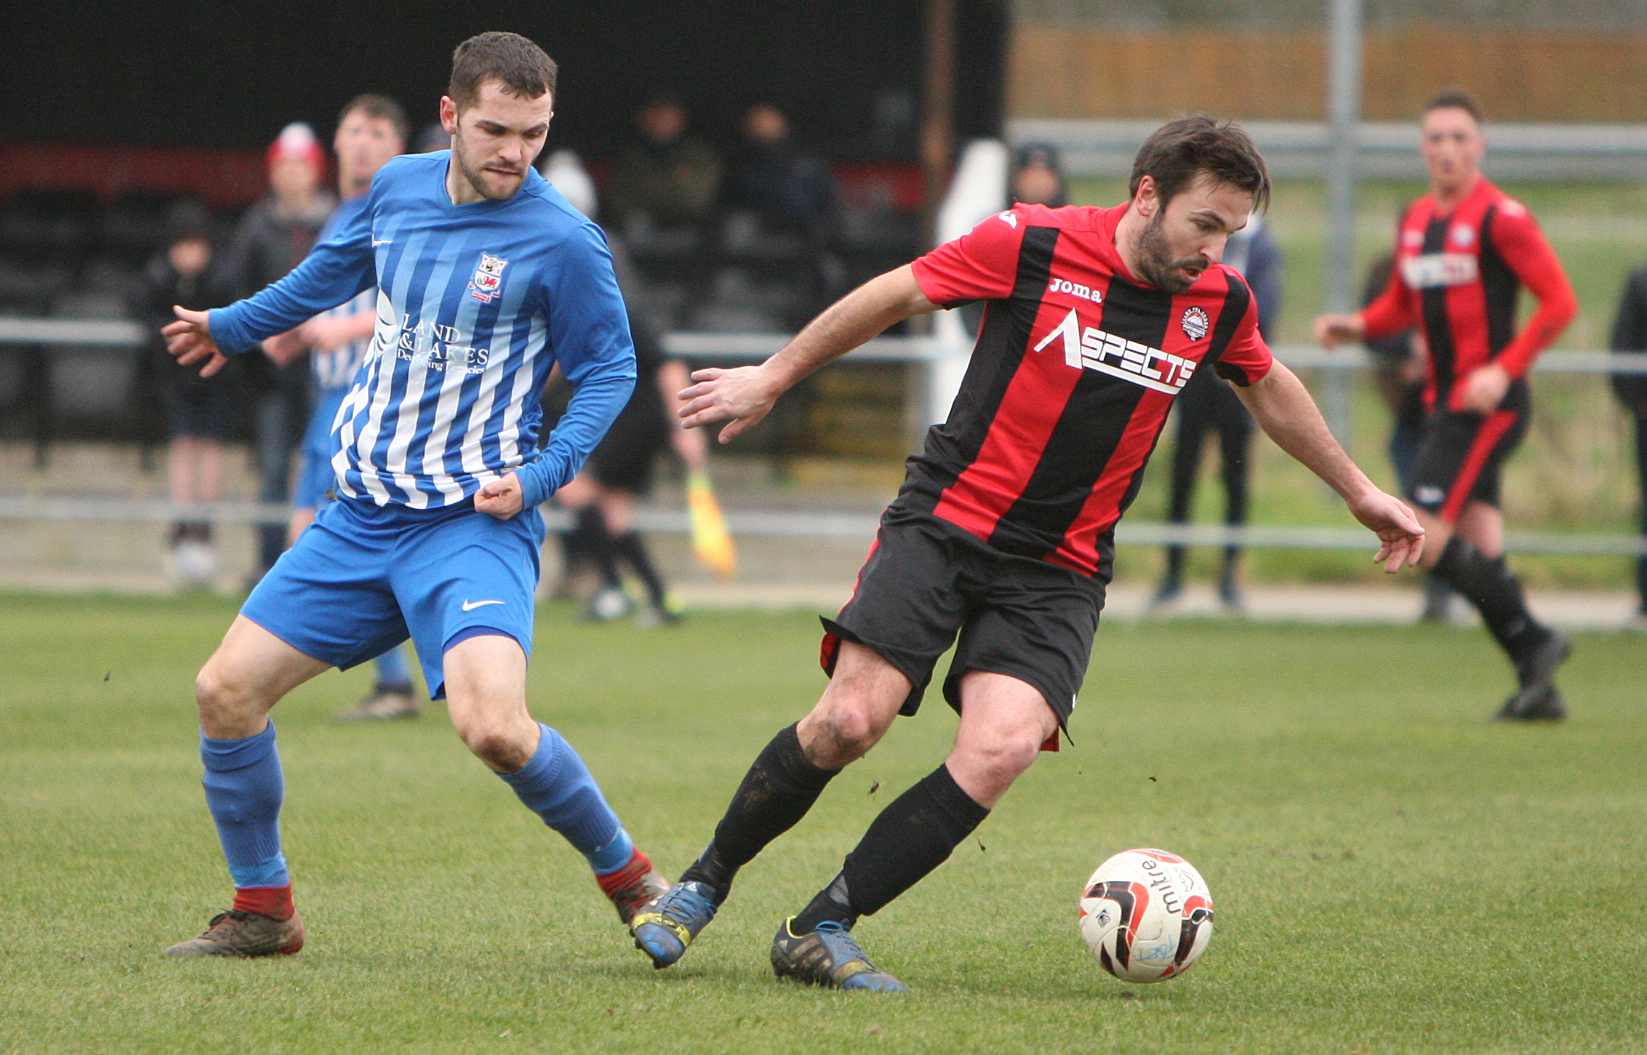 Porthmadog secured a narrow home win over Conwy Borough (Photo by Richard Birch)